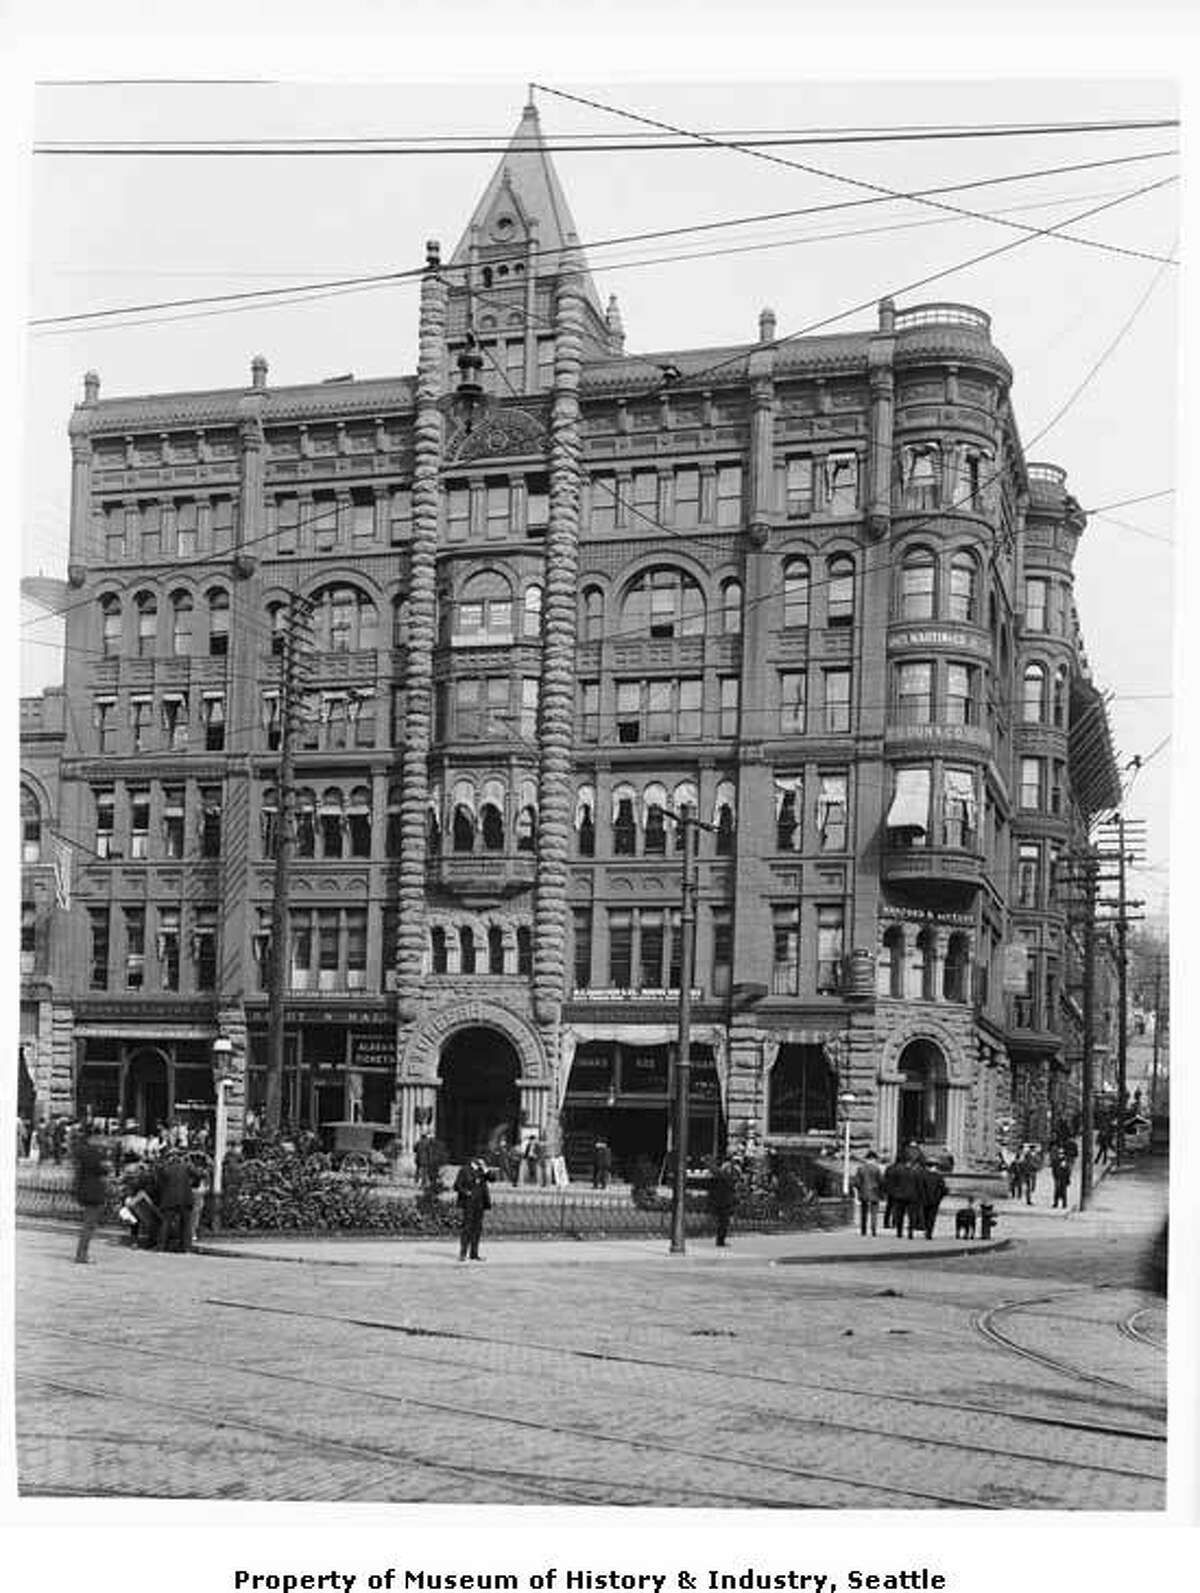 """Finished in 1892 and standing 110 feet tall, the Pioneer Building was Seattle's tallest building for 12 years. """"Many of the wooden buildings destroyed in Seattle's 1889 fire were replaced with large, modern brick buildings. Businessman Henry Yesler commissioned the Pioneer Building on the site of his original Seattle home. At the time this photo was taken, the building housed insurance agents, a bank, law offices, a cigar store, and an agency which sold tickets to Alaska.The brick and stone building still stands at Pioneer Square. This photo, taken between 1897 and 1900, shows the Pioneer Building at the corner of First Avenue and James Street in Pioneer Square. Awnings shade some of the windows on the ground and upper floors. Earthquakes later weakened the tall tower above the front entrance, and the tower was removed sometime in the 1930s."""" -MOHAI. Photo courtesy MOHAI, Anders B. Wilse Collection, image number 1988.33.49."""